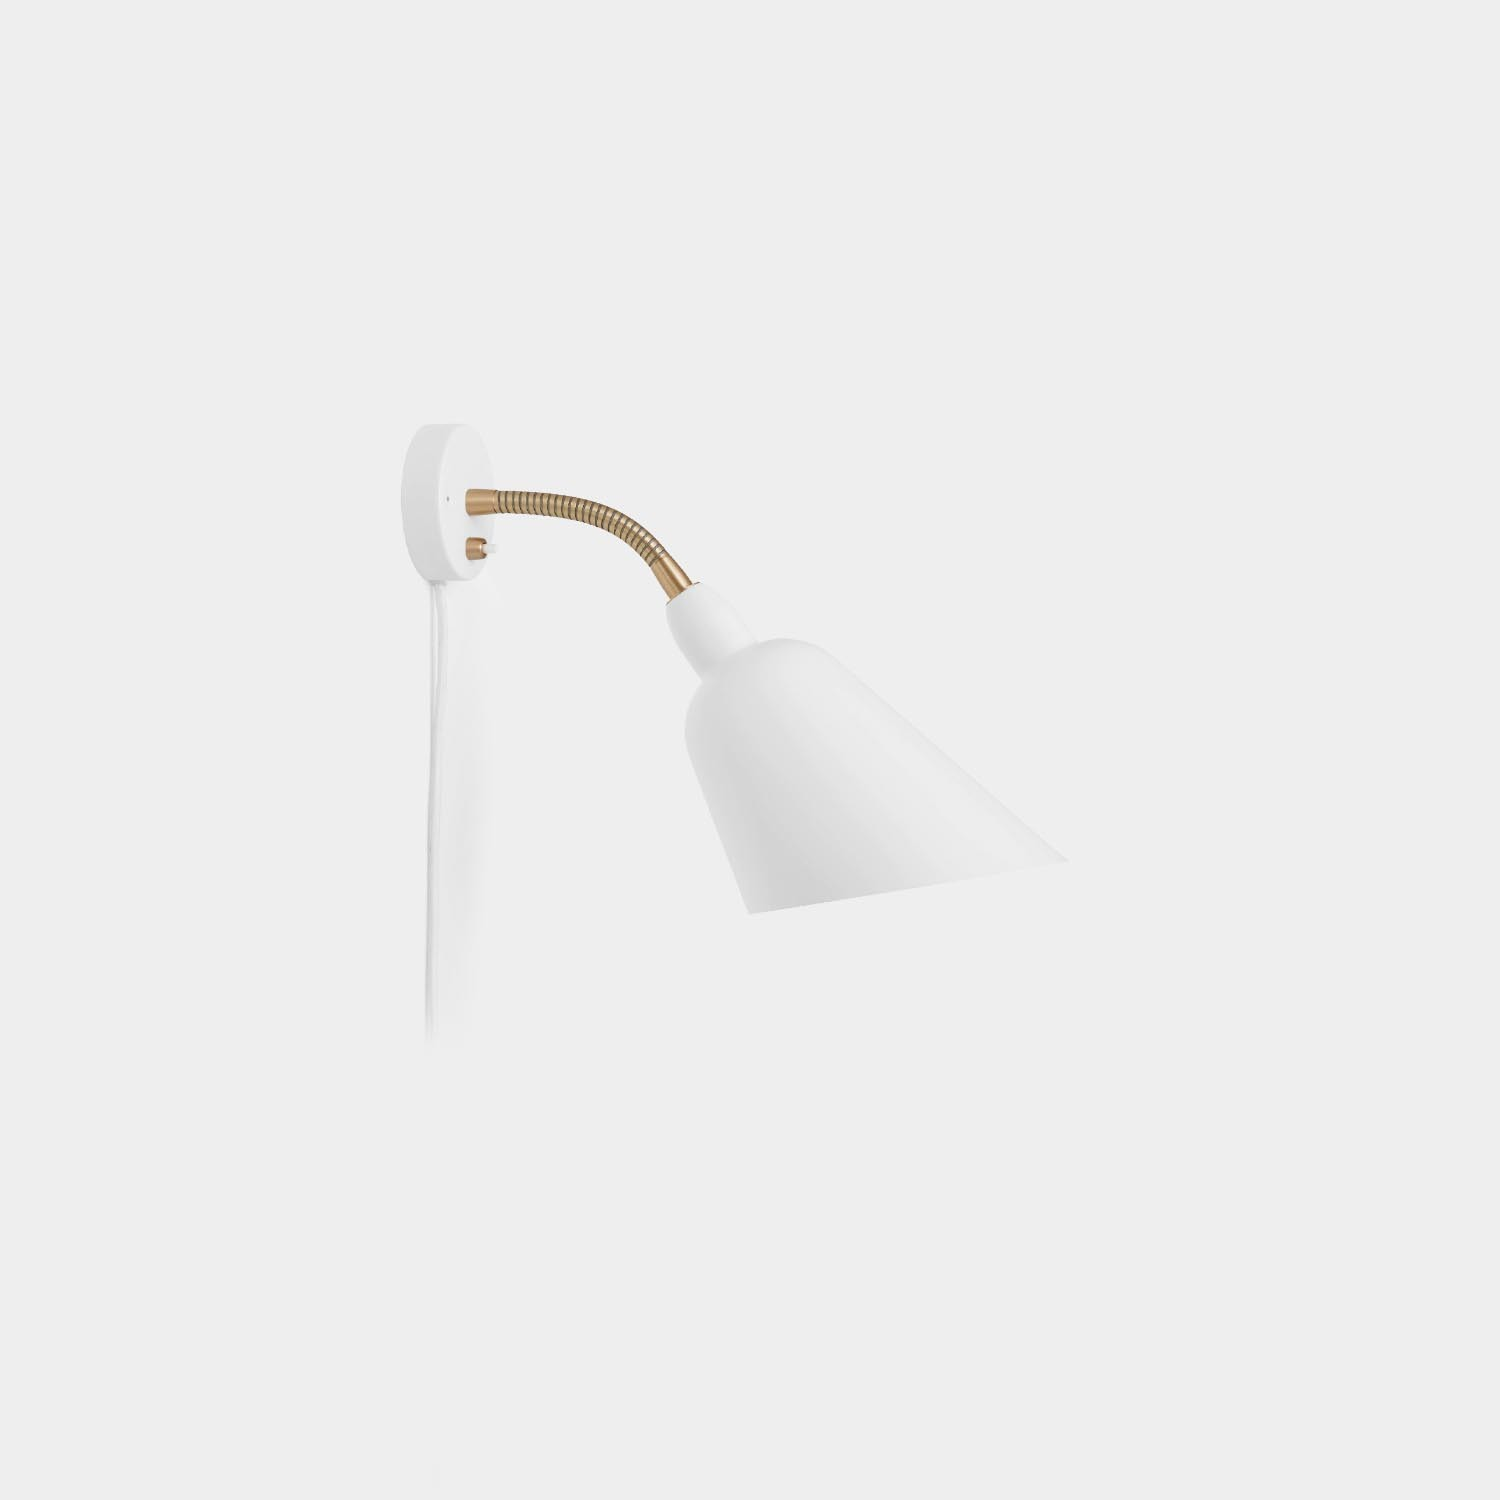 Bellevue Wall Lamp AJ9, White and Brass